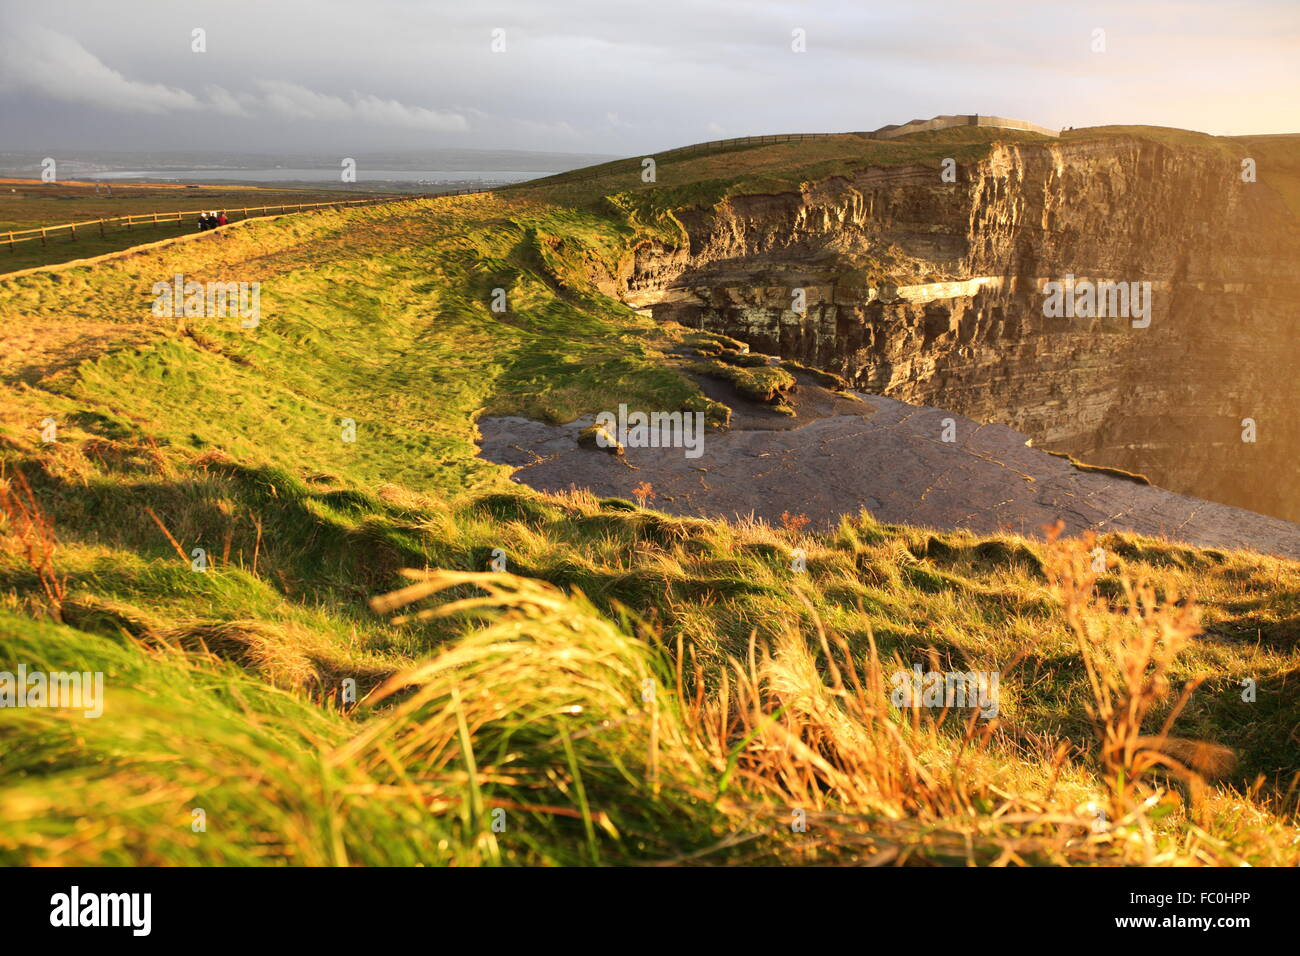 Cliffs of Moher at sunset in Co. Clare, Ireland - Stock Image